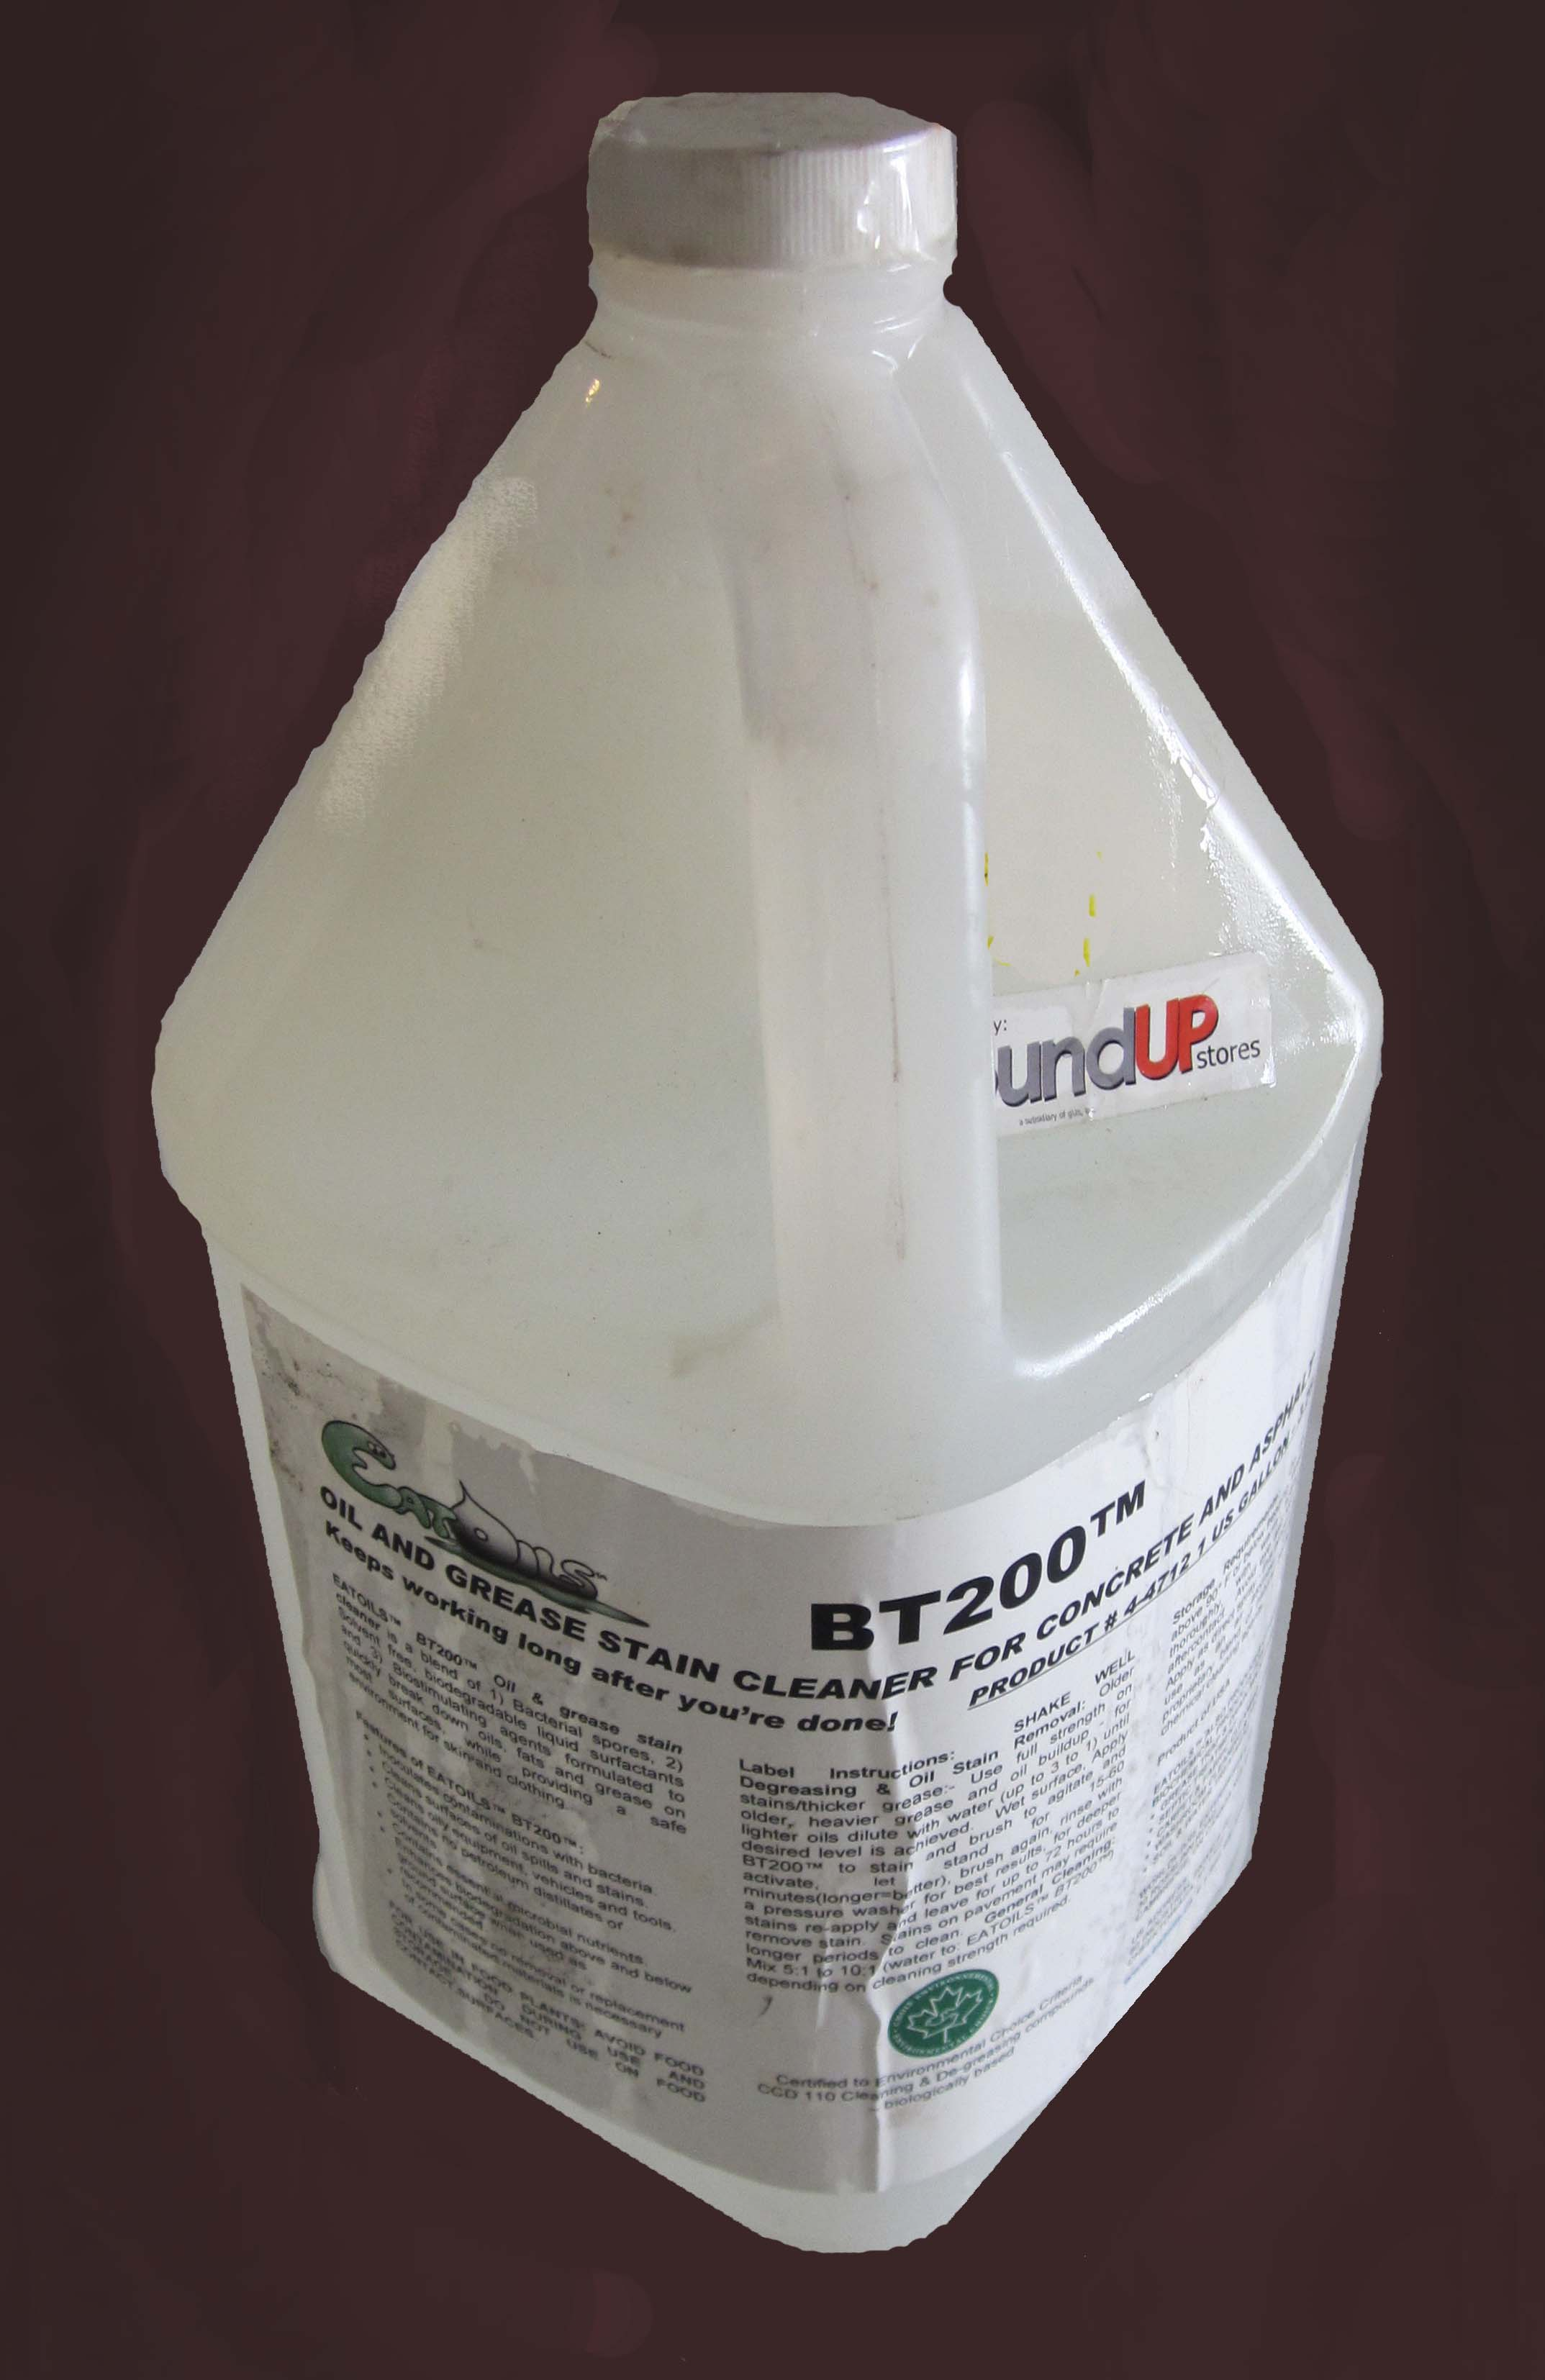 Image logo for BT200 Oil and Grease Stain Cleaner for Concrete and Asphalt - EatOILS  BT200